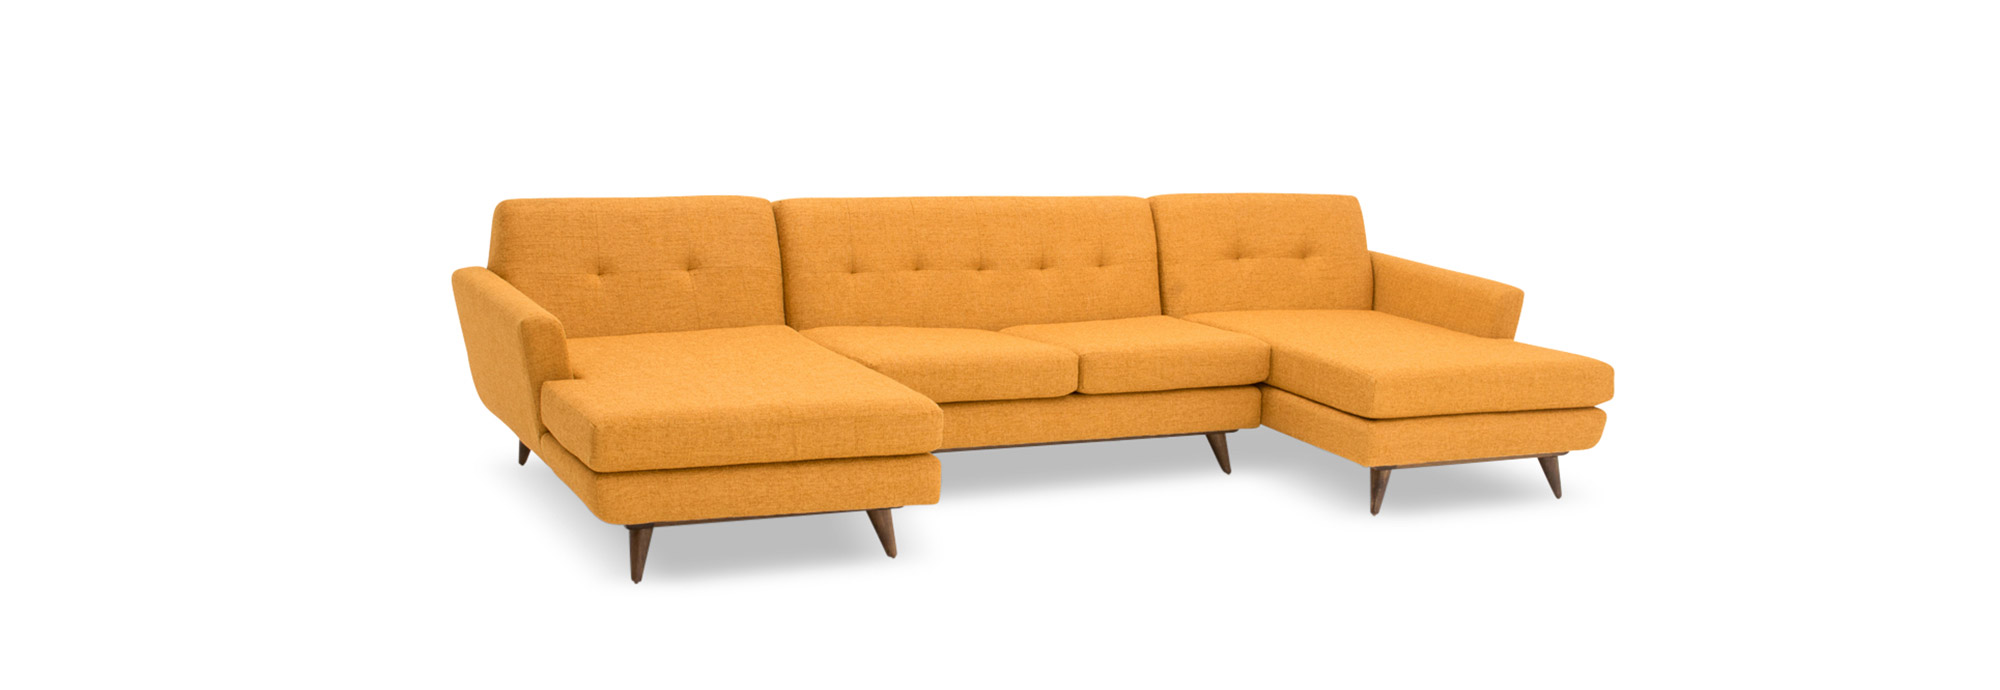 photobook-hughes-u-chaise-sectional